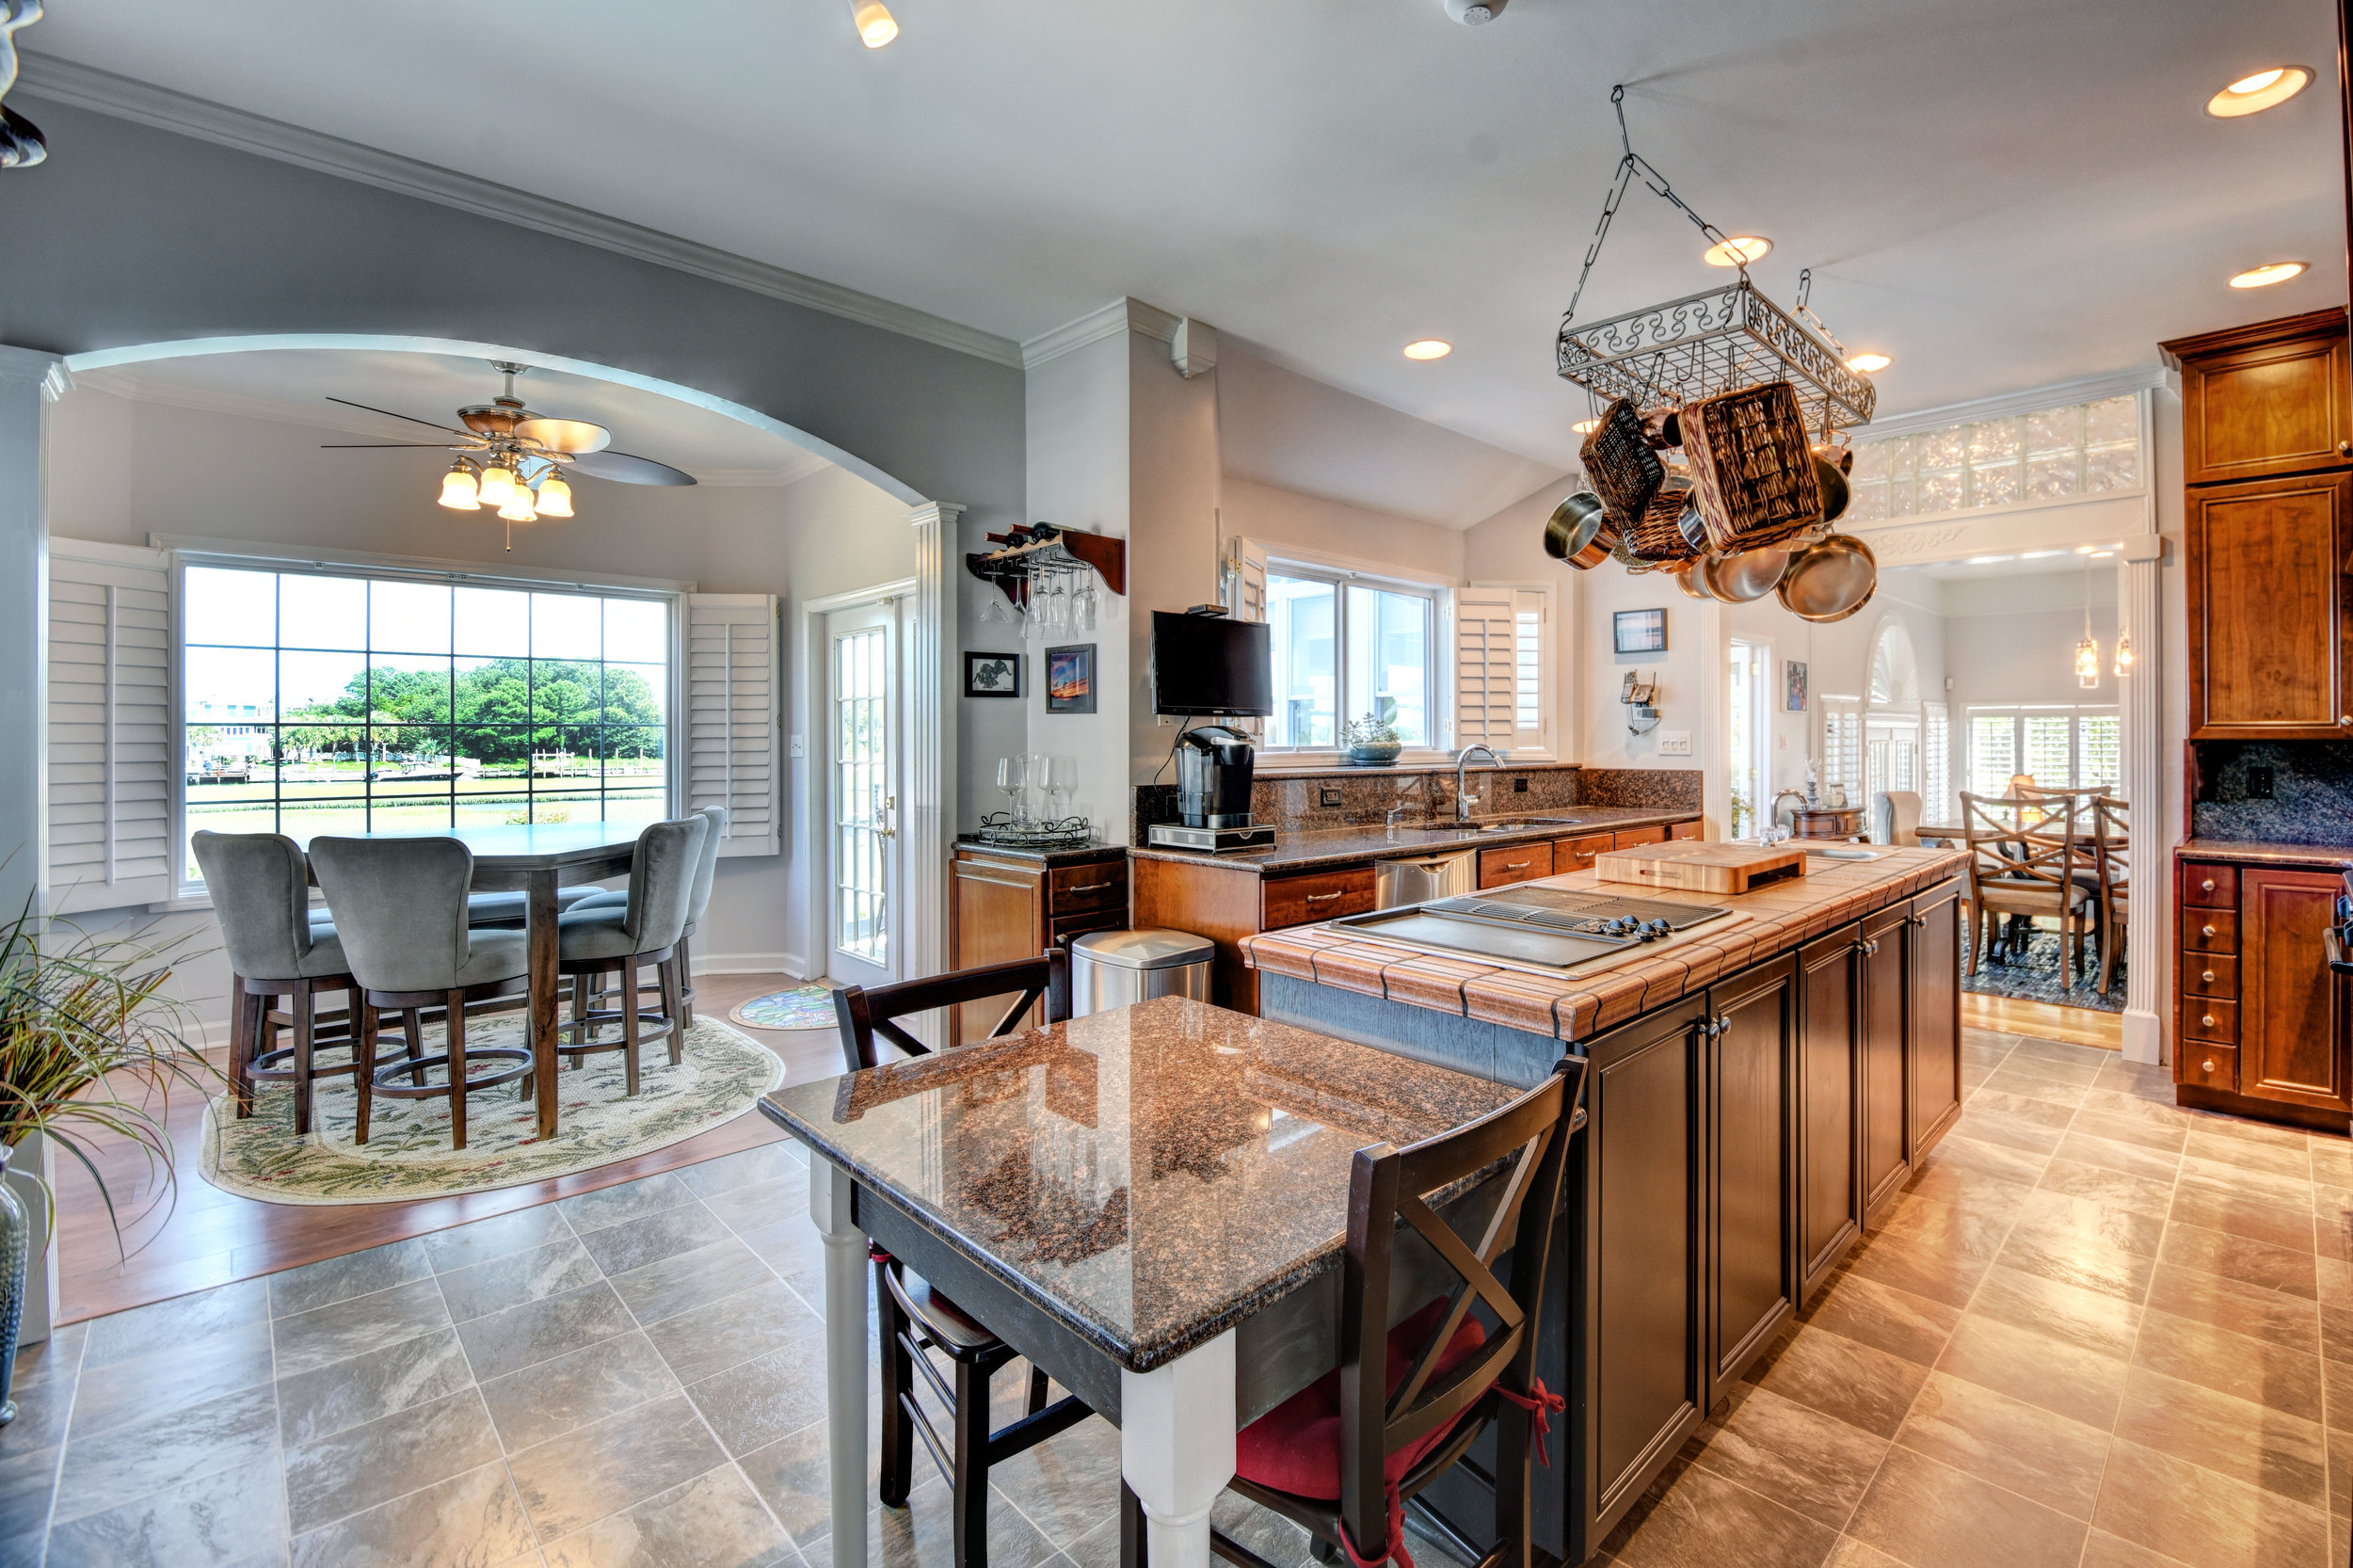 842 Shinn Point Rd Wilmington-print-033-68-KitchenBreakfast Room-4200x2800-300dpi.jpg